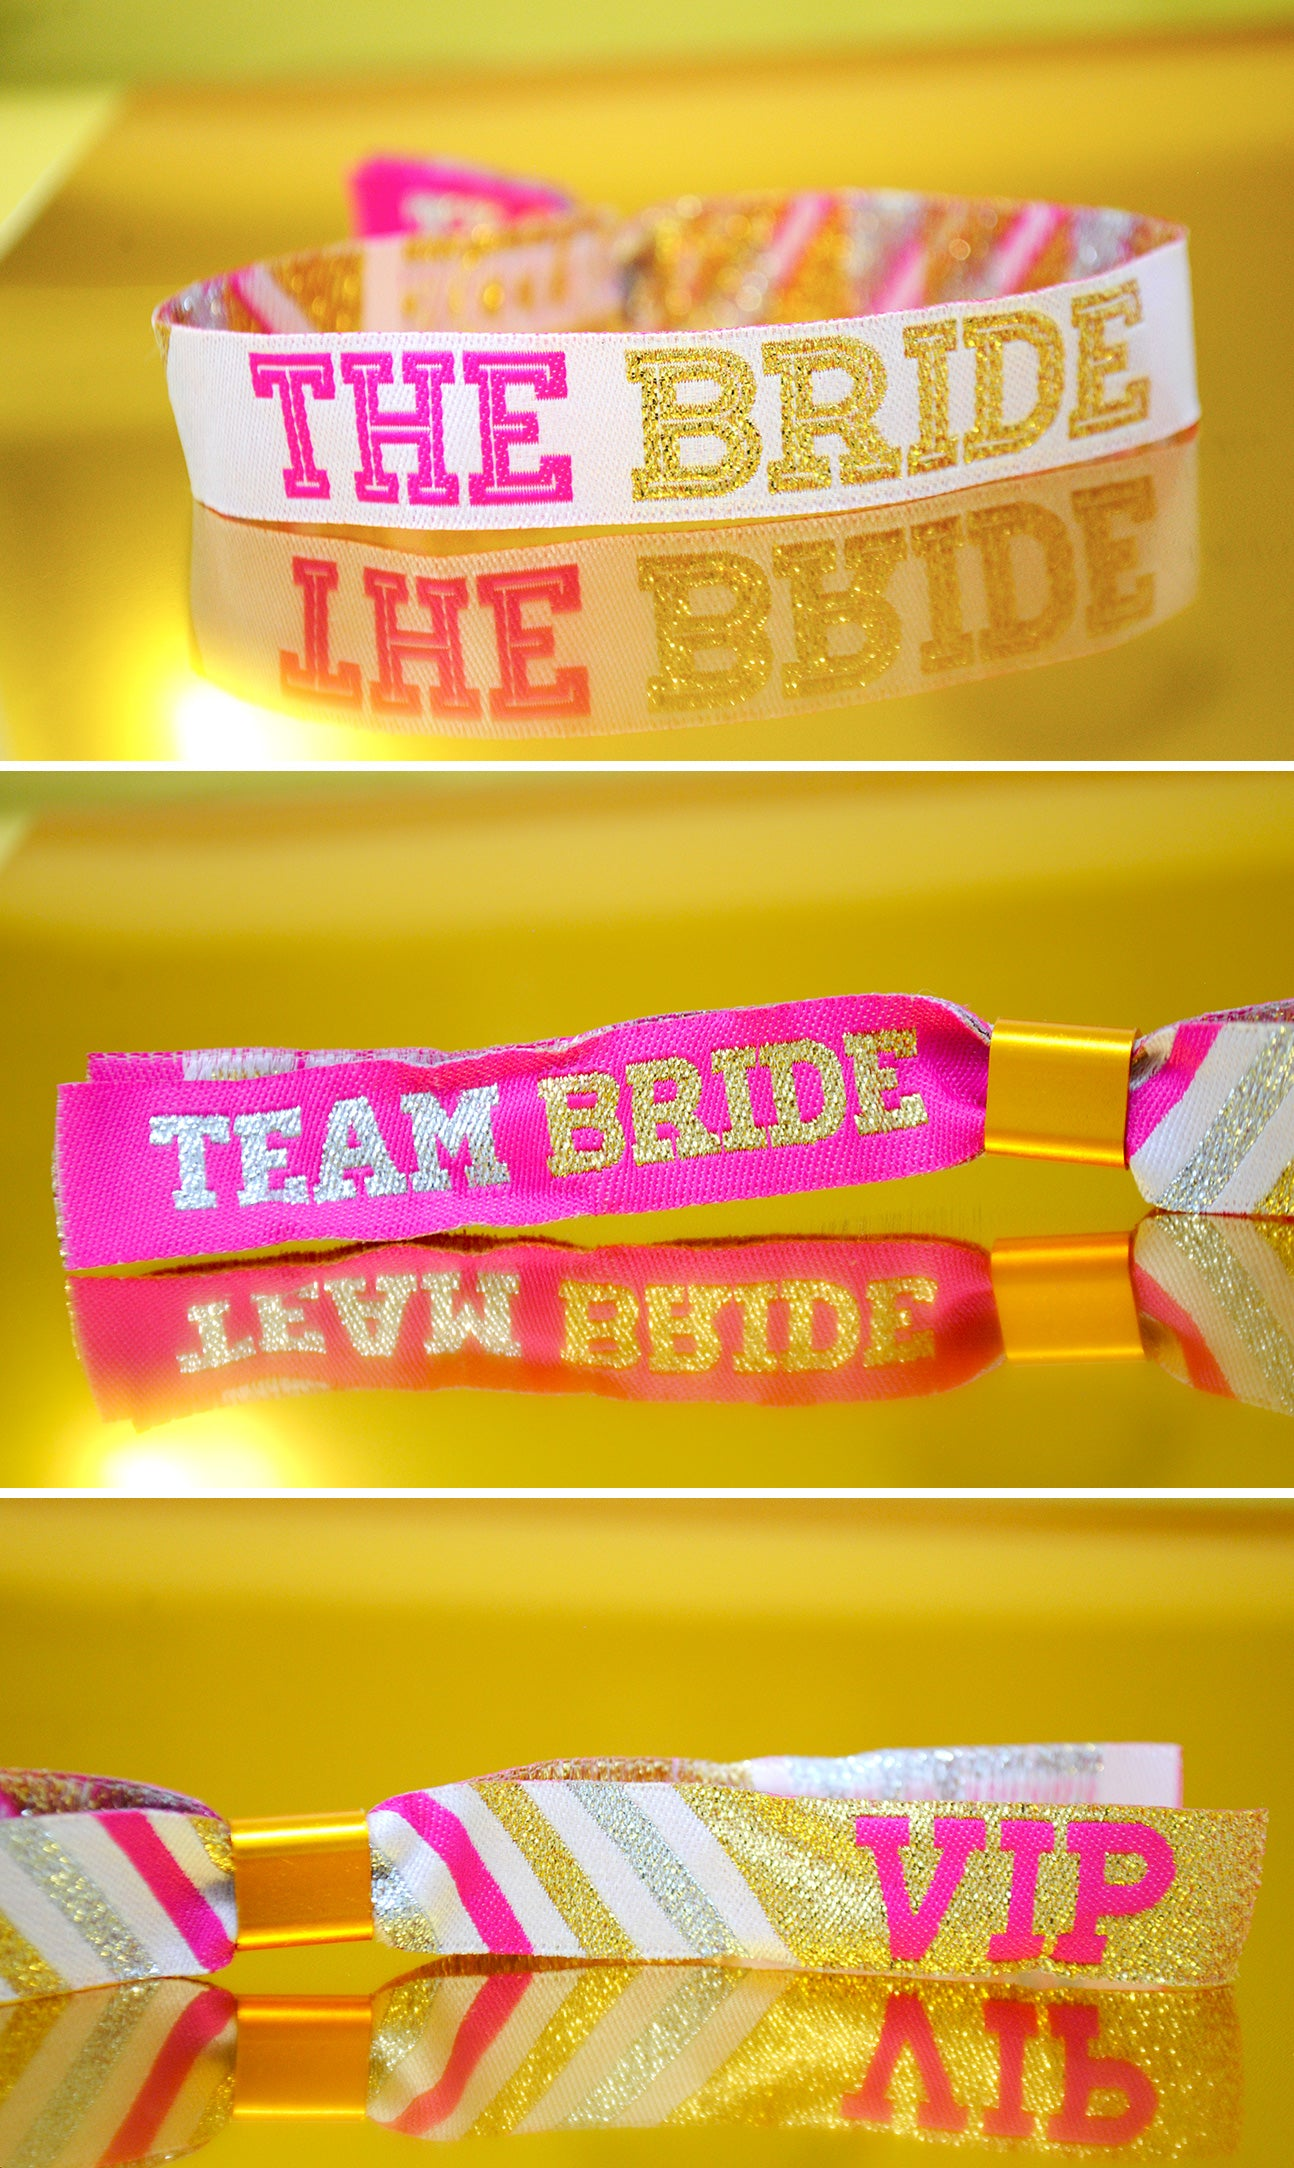 team bride hen party cheerleaders wristband pink and gold